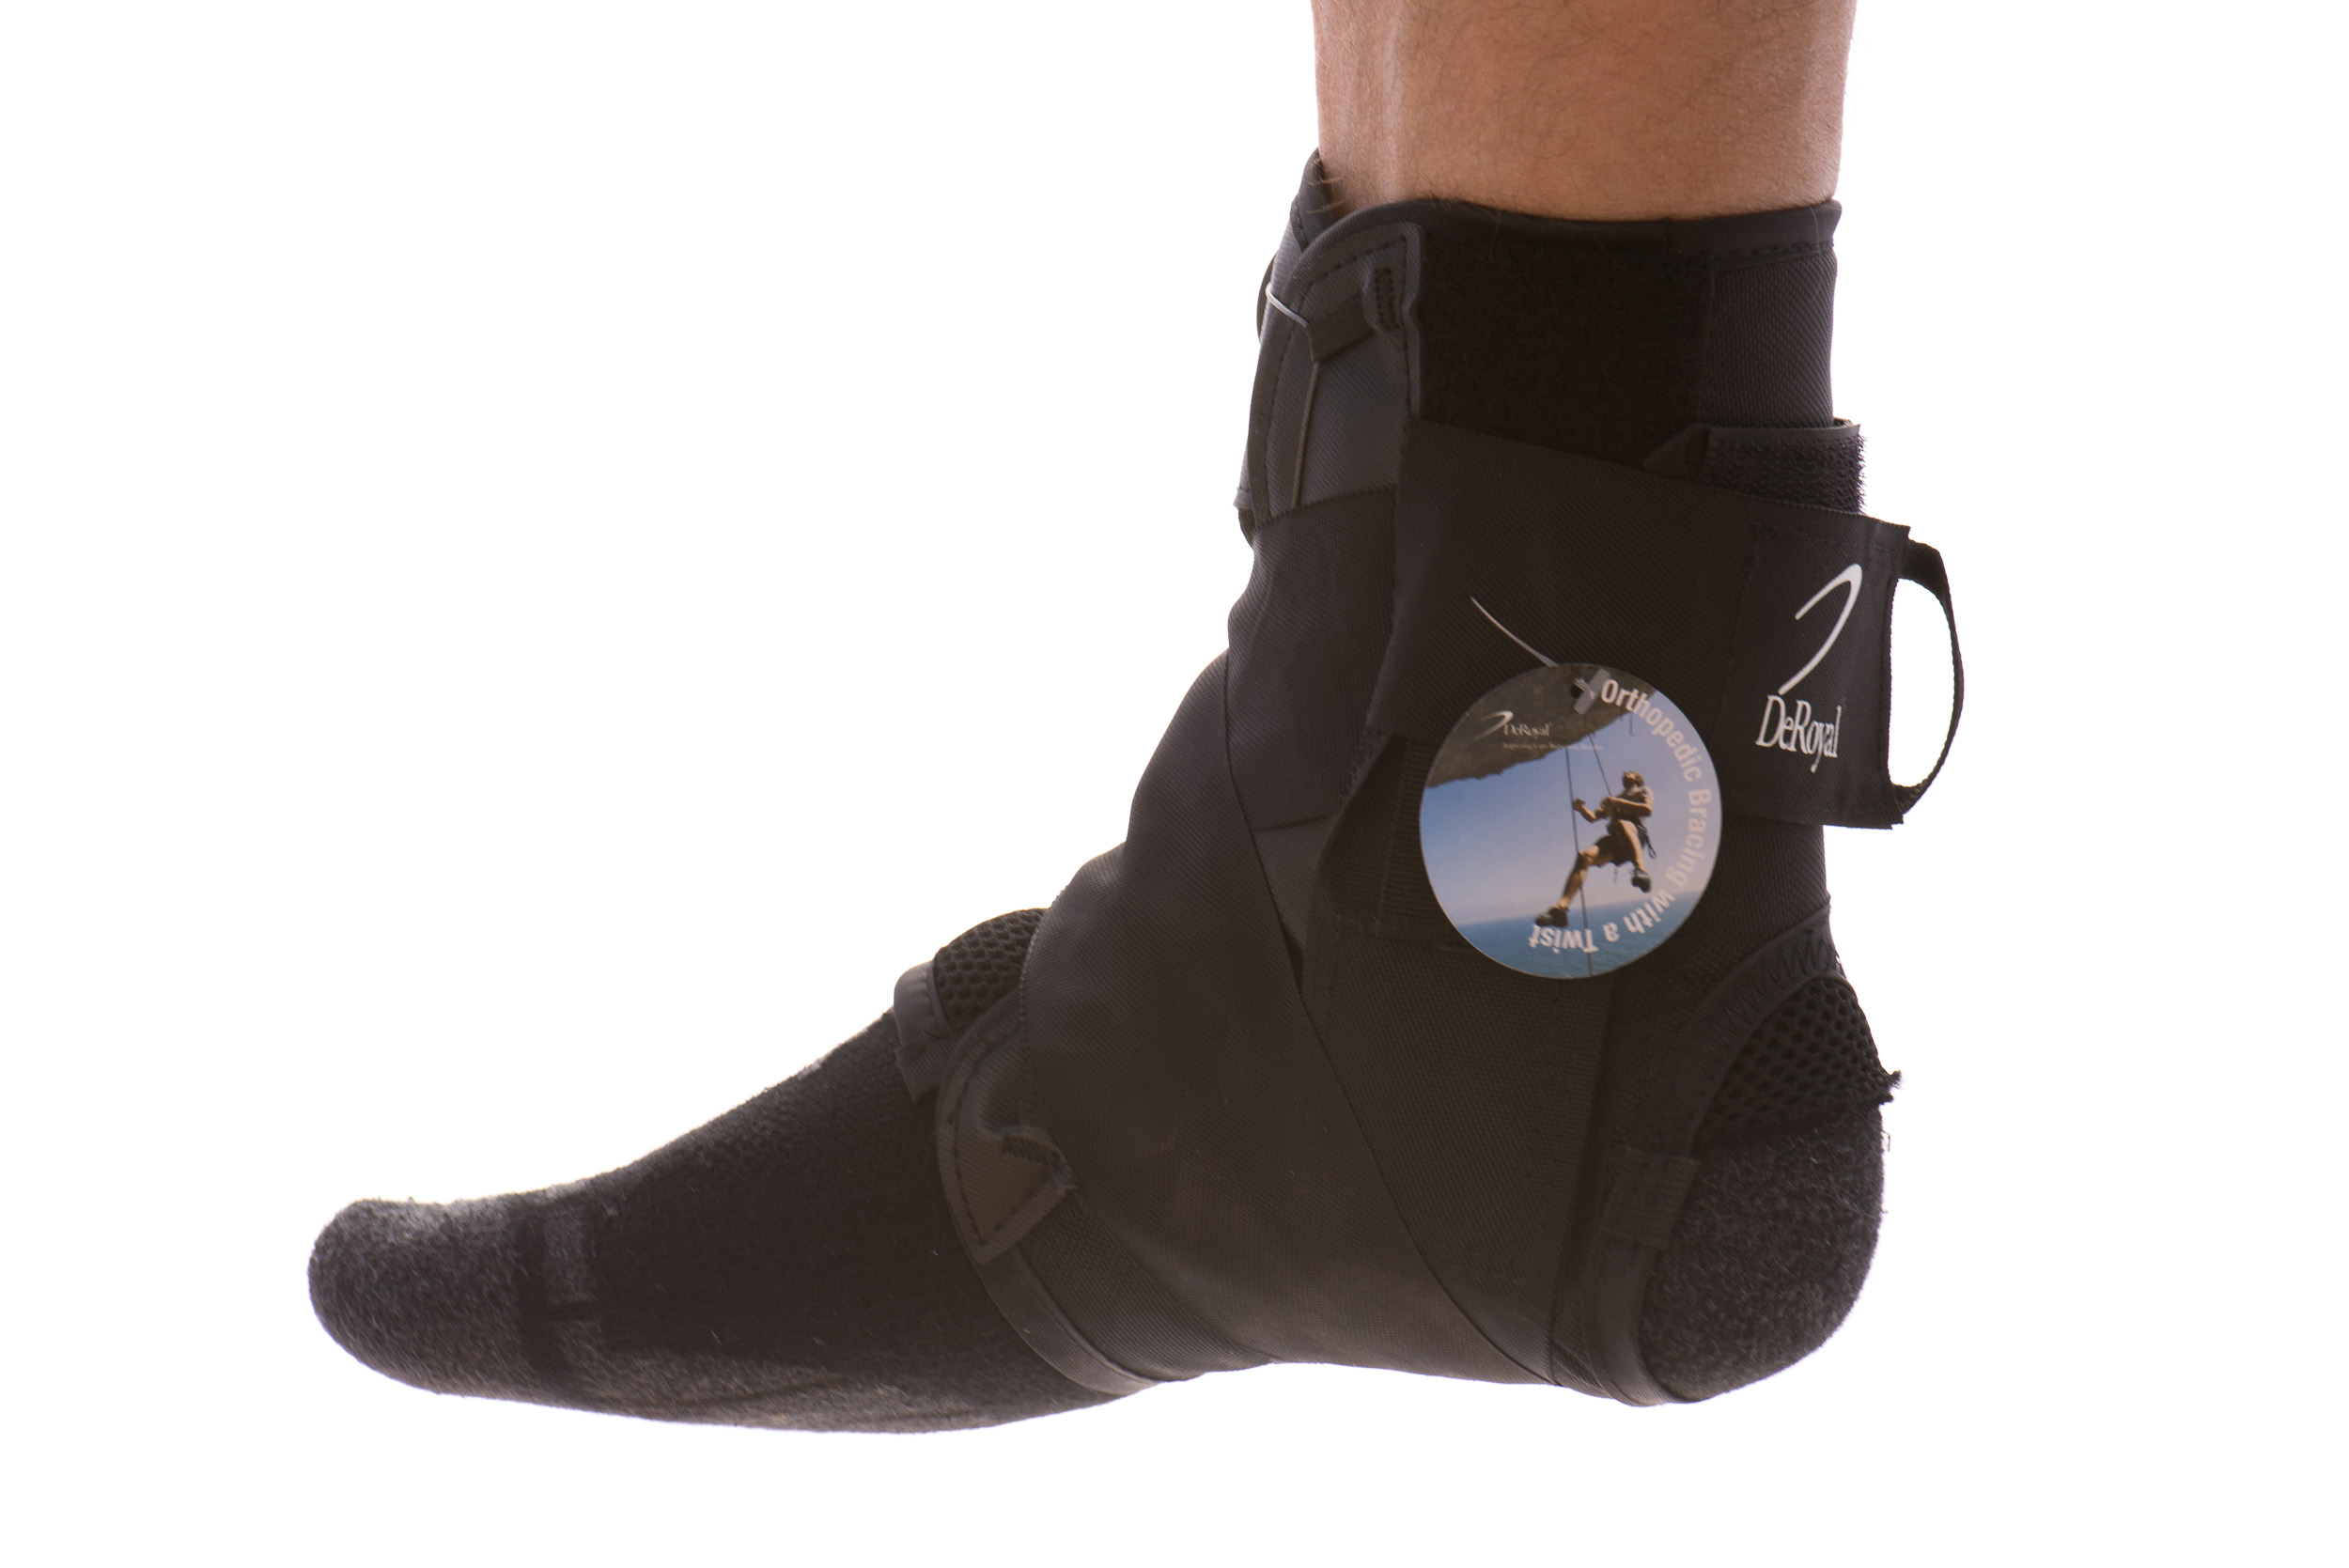 Ankle Foot Orthotics Braces (AFO's)